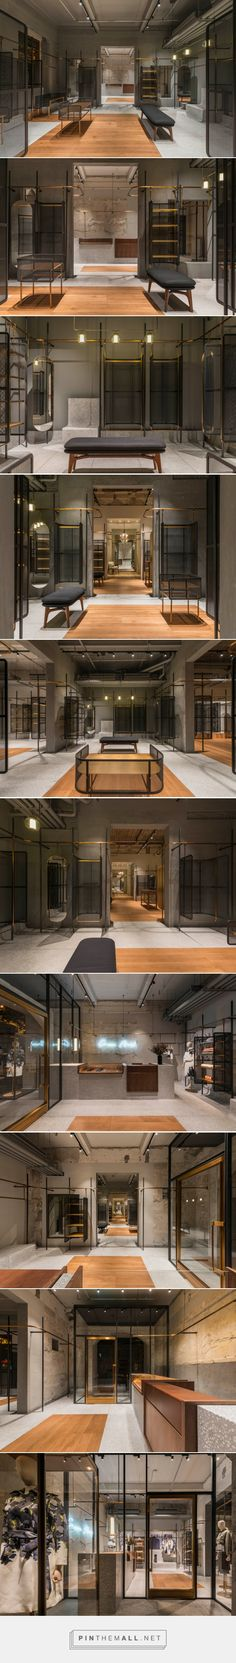 neri & hu outfits flagship store for comme moi in shanghai - created via http://pinthemall.net